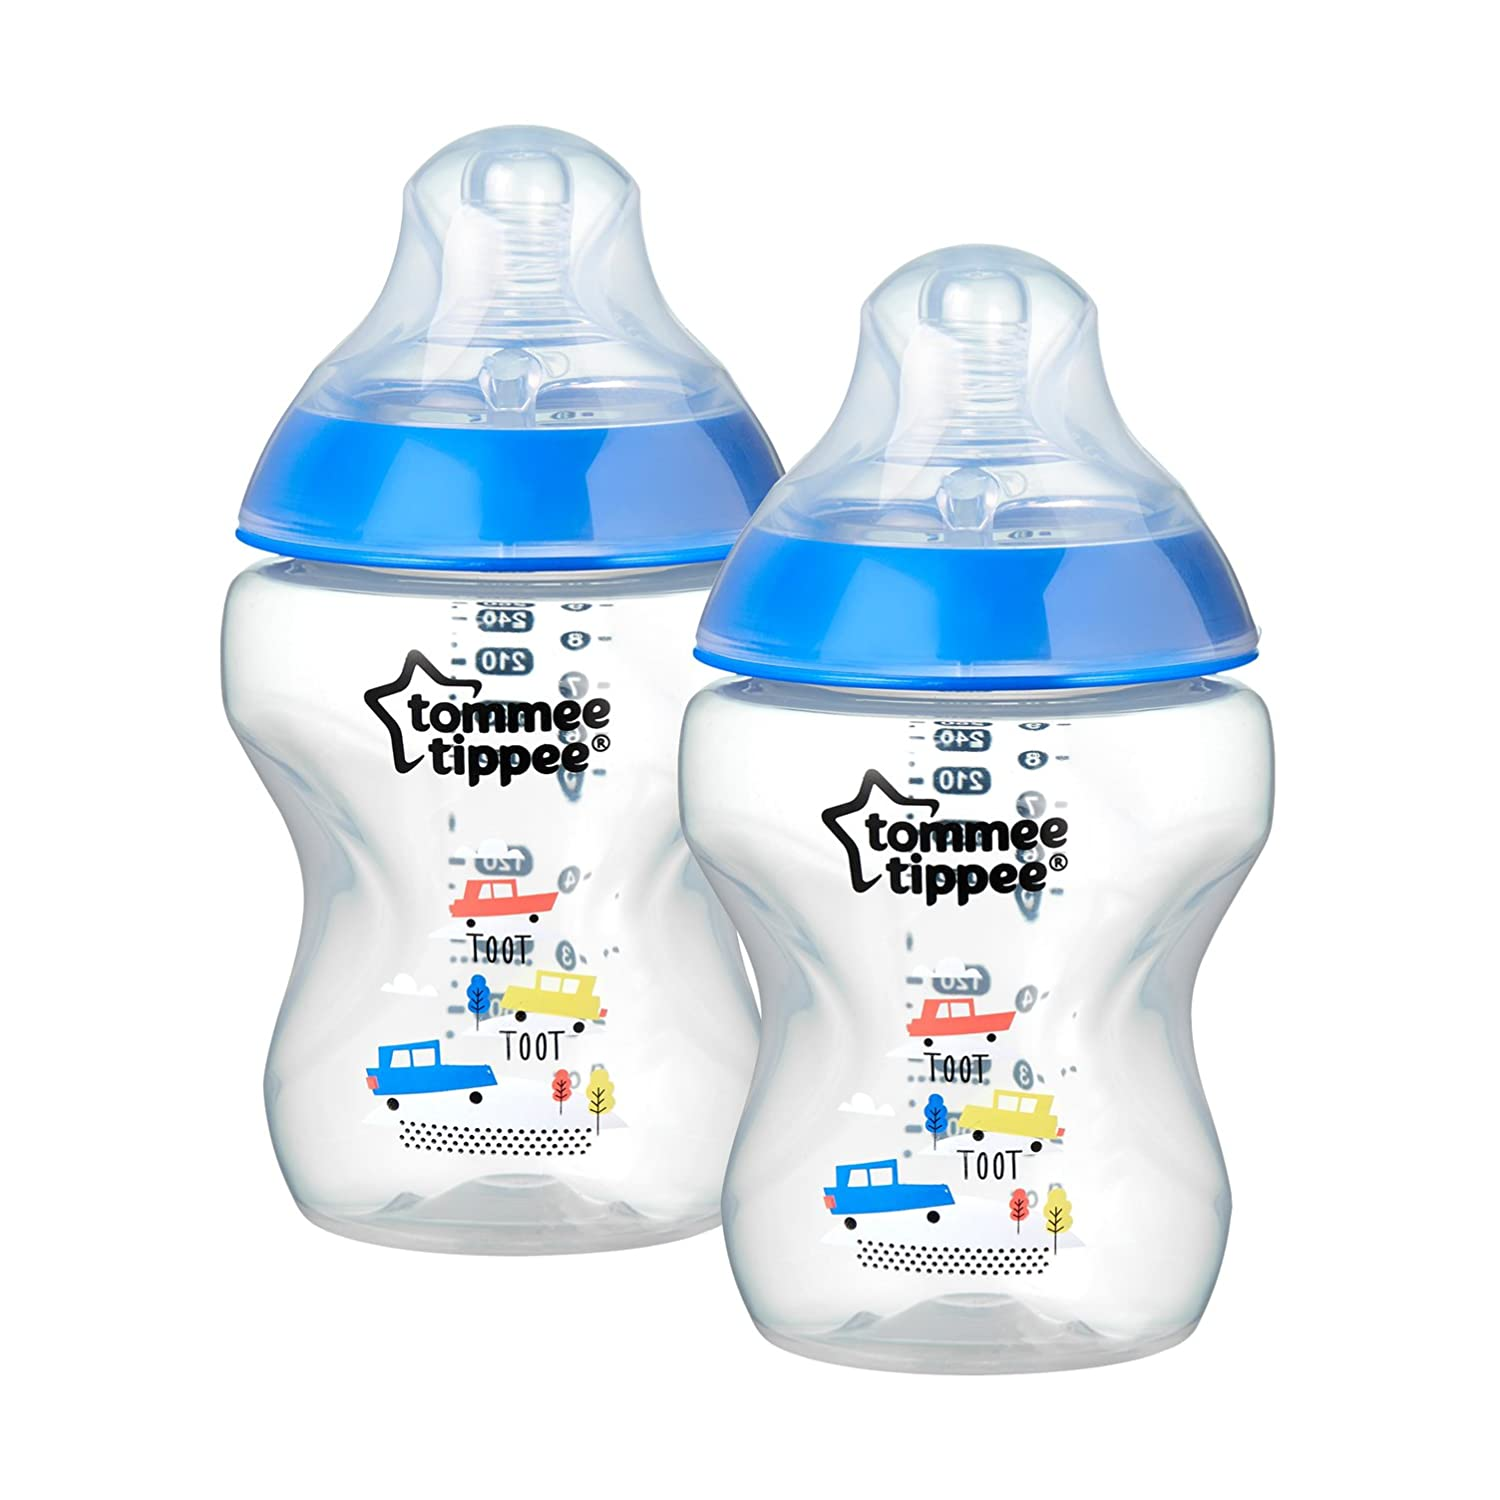 Tommee Tippee 42252171 Pack of 2 Anti-Colic Slow-Flow Baby Bottles 260, suitable for 0 Months and Up, assorted colors